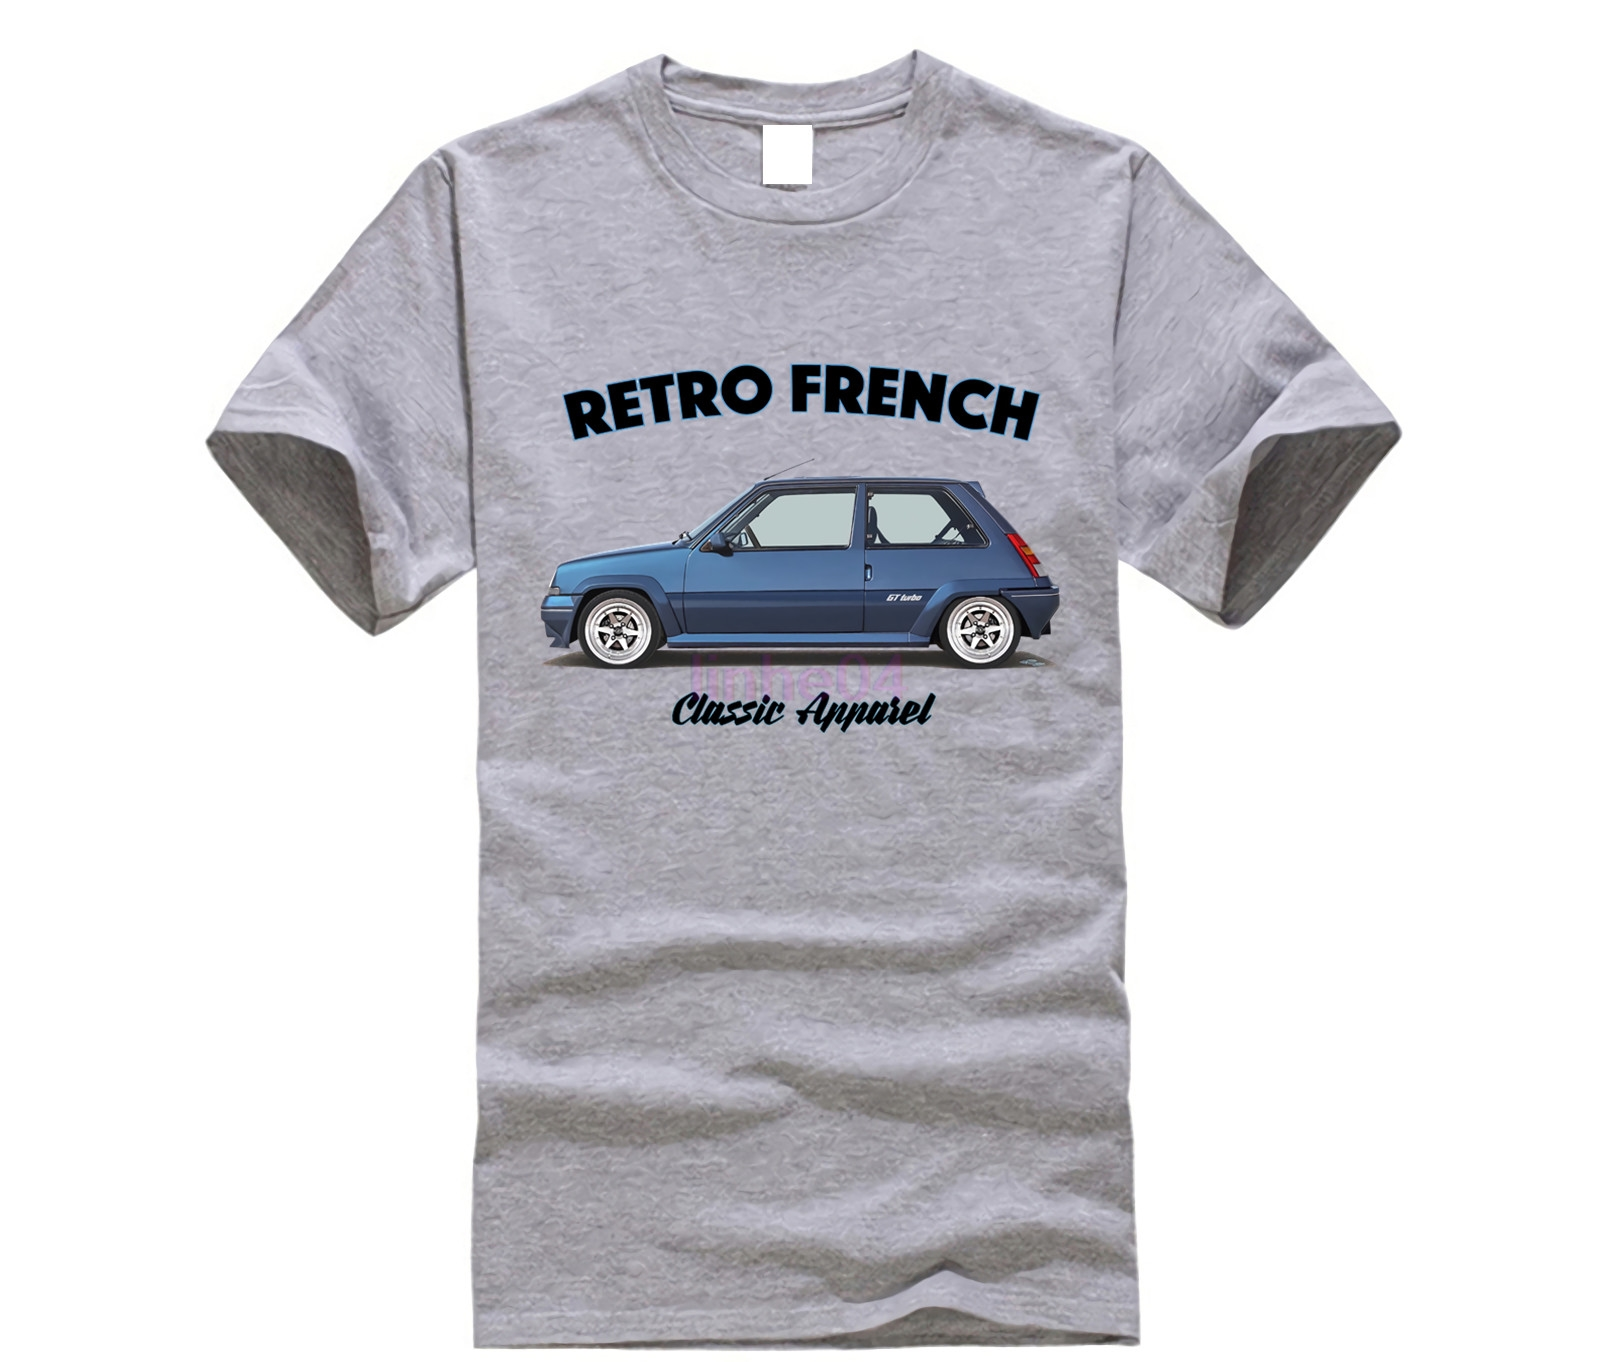 2019 Venta caliente Super Mode <font><b>RENAULT</b></font> <font><b>5</b></font> <font><b>GT</b></font> <font><b>TURBO</b></font> camiseta. image